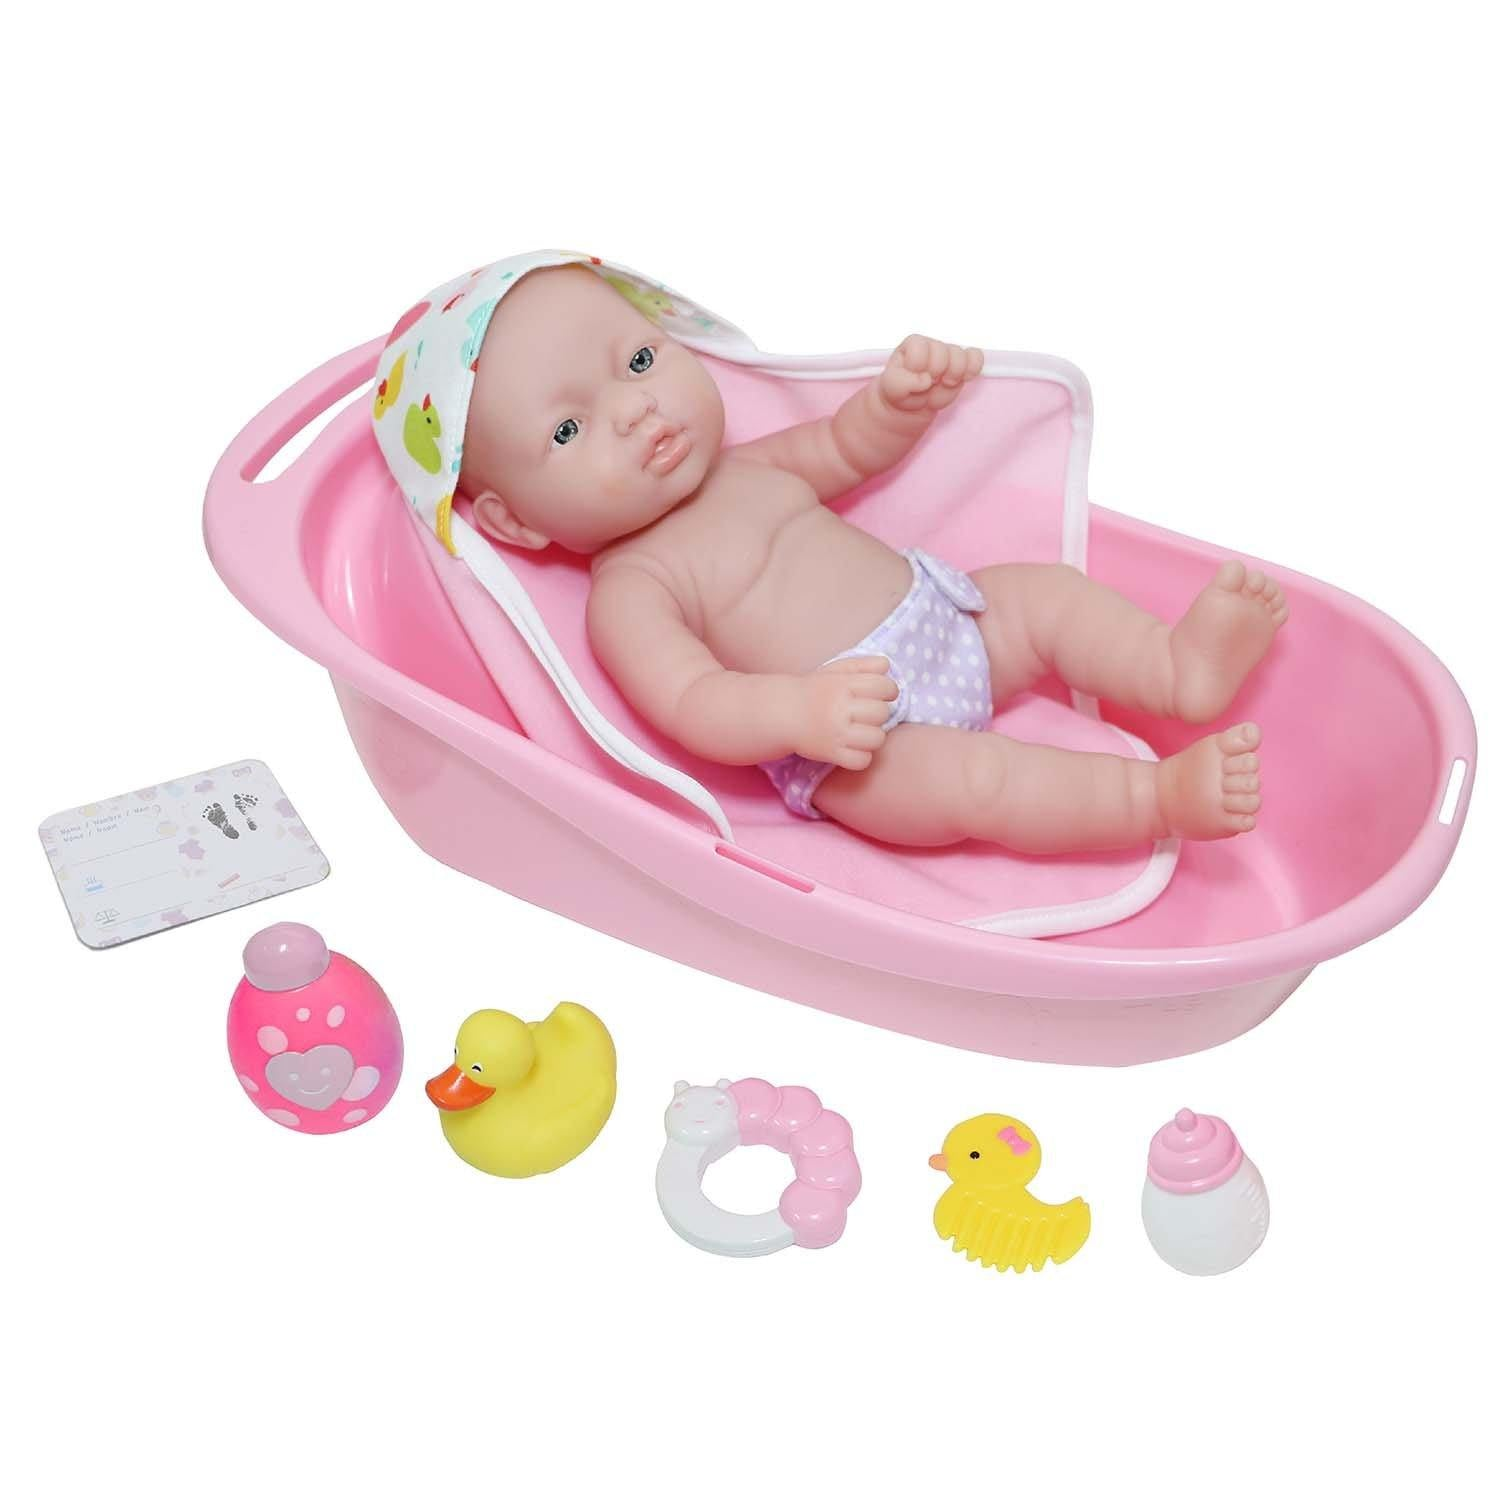 "JC Toys, La Newborn 10 piece Layette Deluxe Bathtub Gift Set 12"" Life-Like Vinyl Newborn Doll w/ Accessories Pink Waterproof Ages 2+"